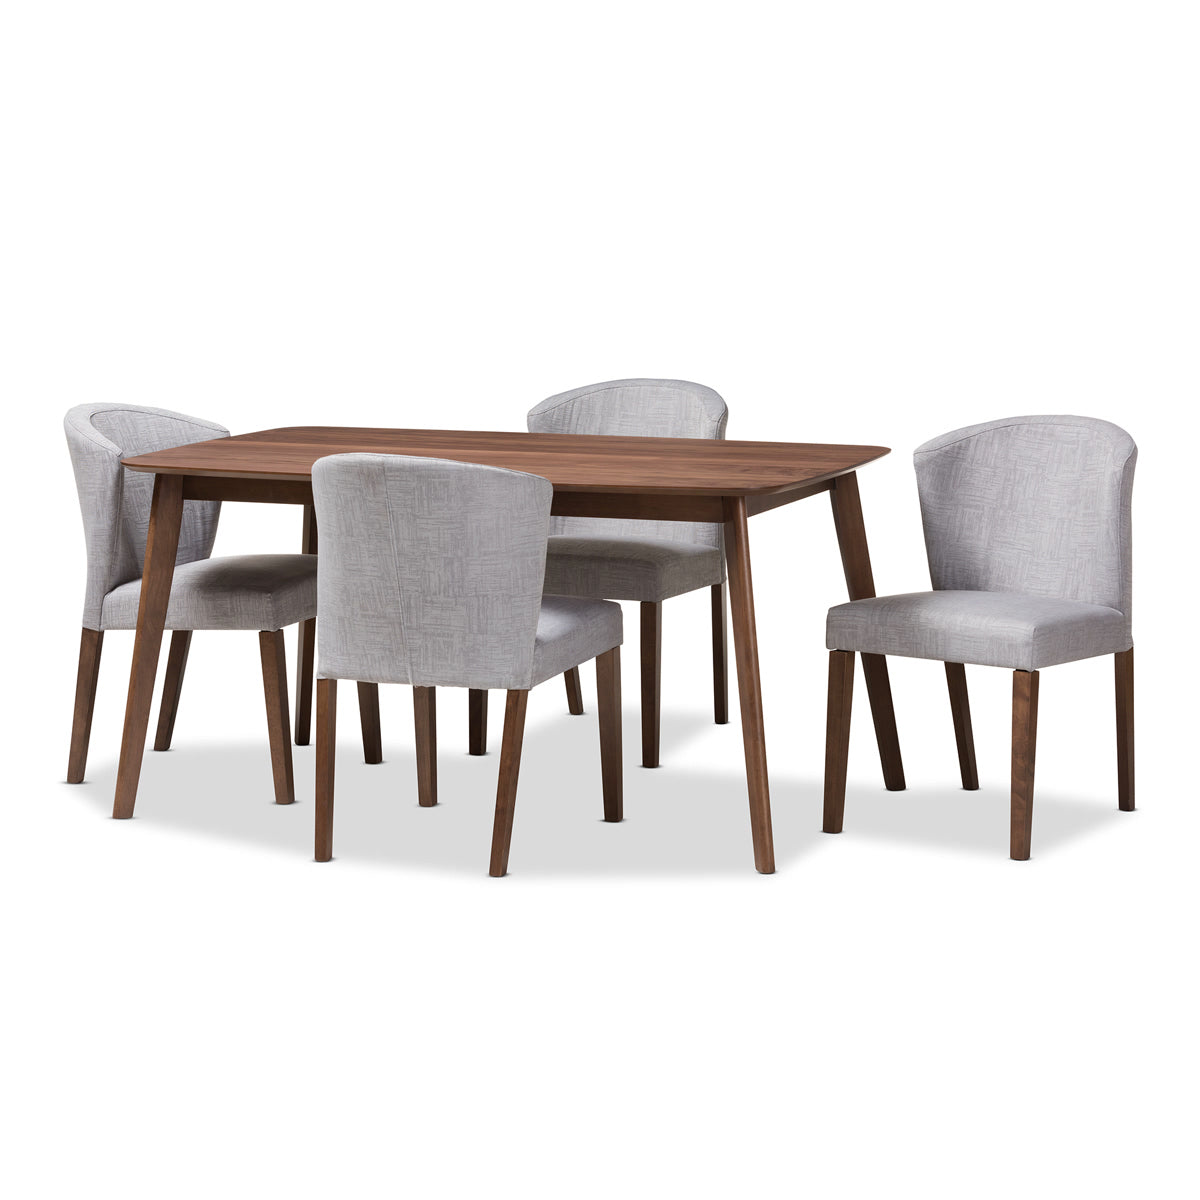 Baxton Studio Cassie Mid-Century Modern Walnut Wood Light Grey Fabric 5-Piece Dining Set Baxton Studio-0-Minimal And Modern - 1